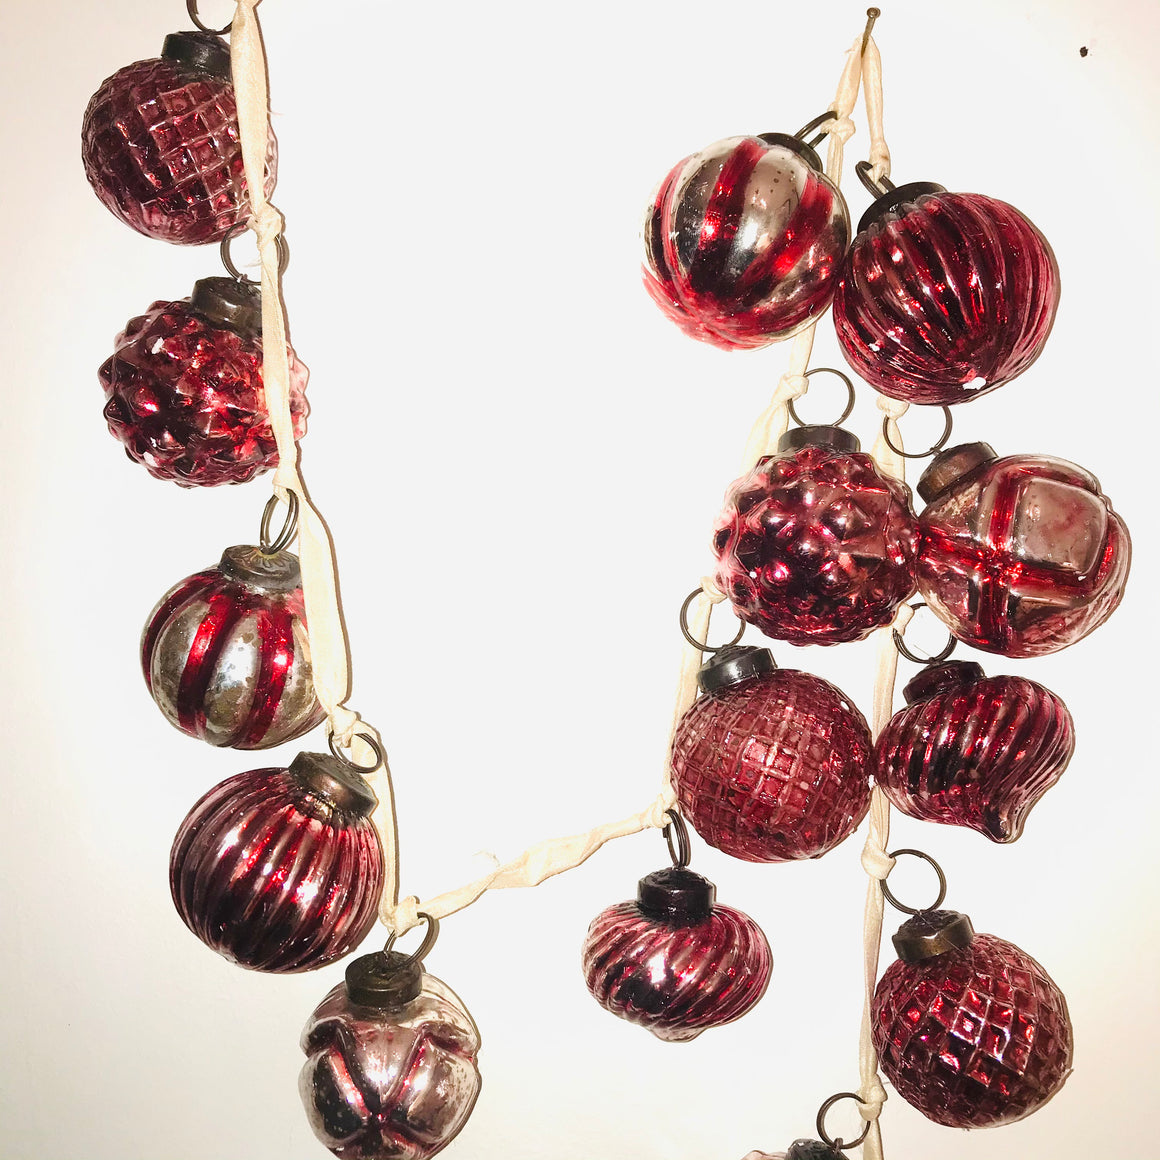 Red Mercury Glass Orgament Garland with Silver Tones